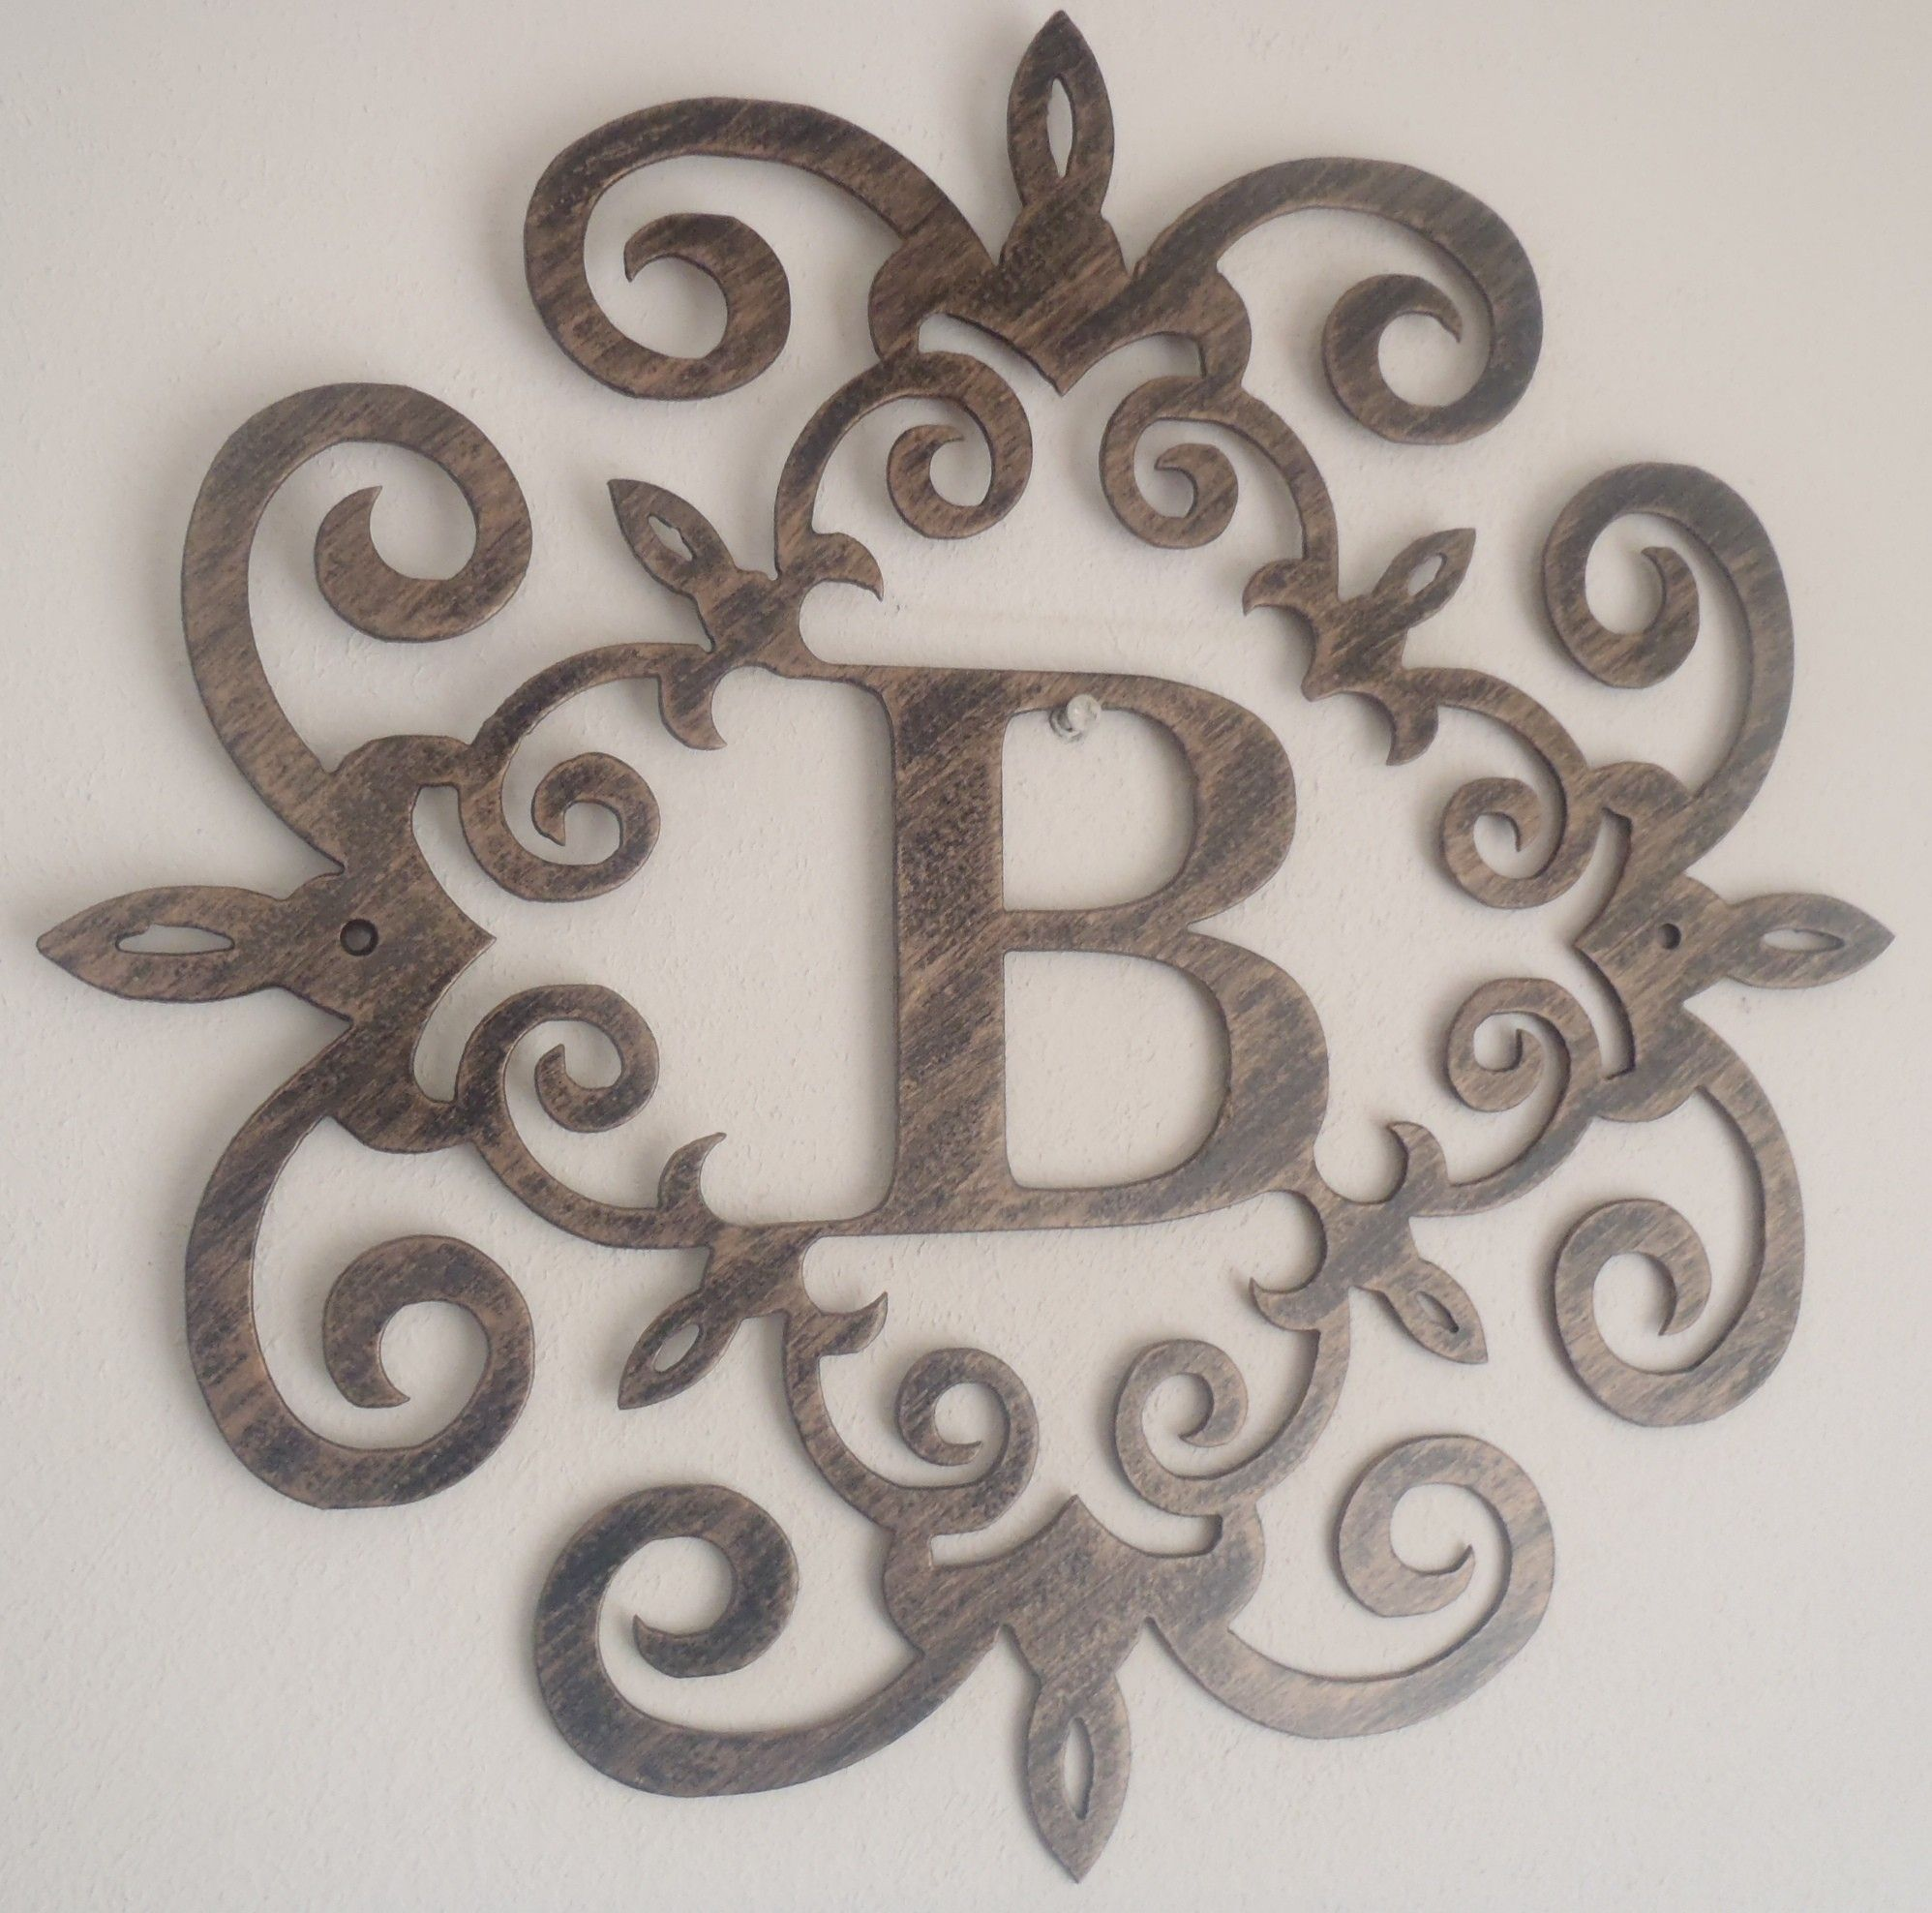 Monogram Wall Art family initial, monogram inside a metal scroll with b letter, wall